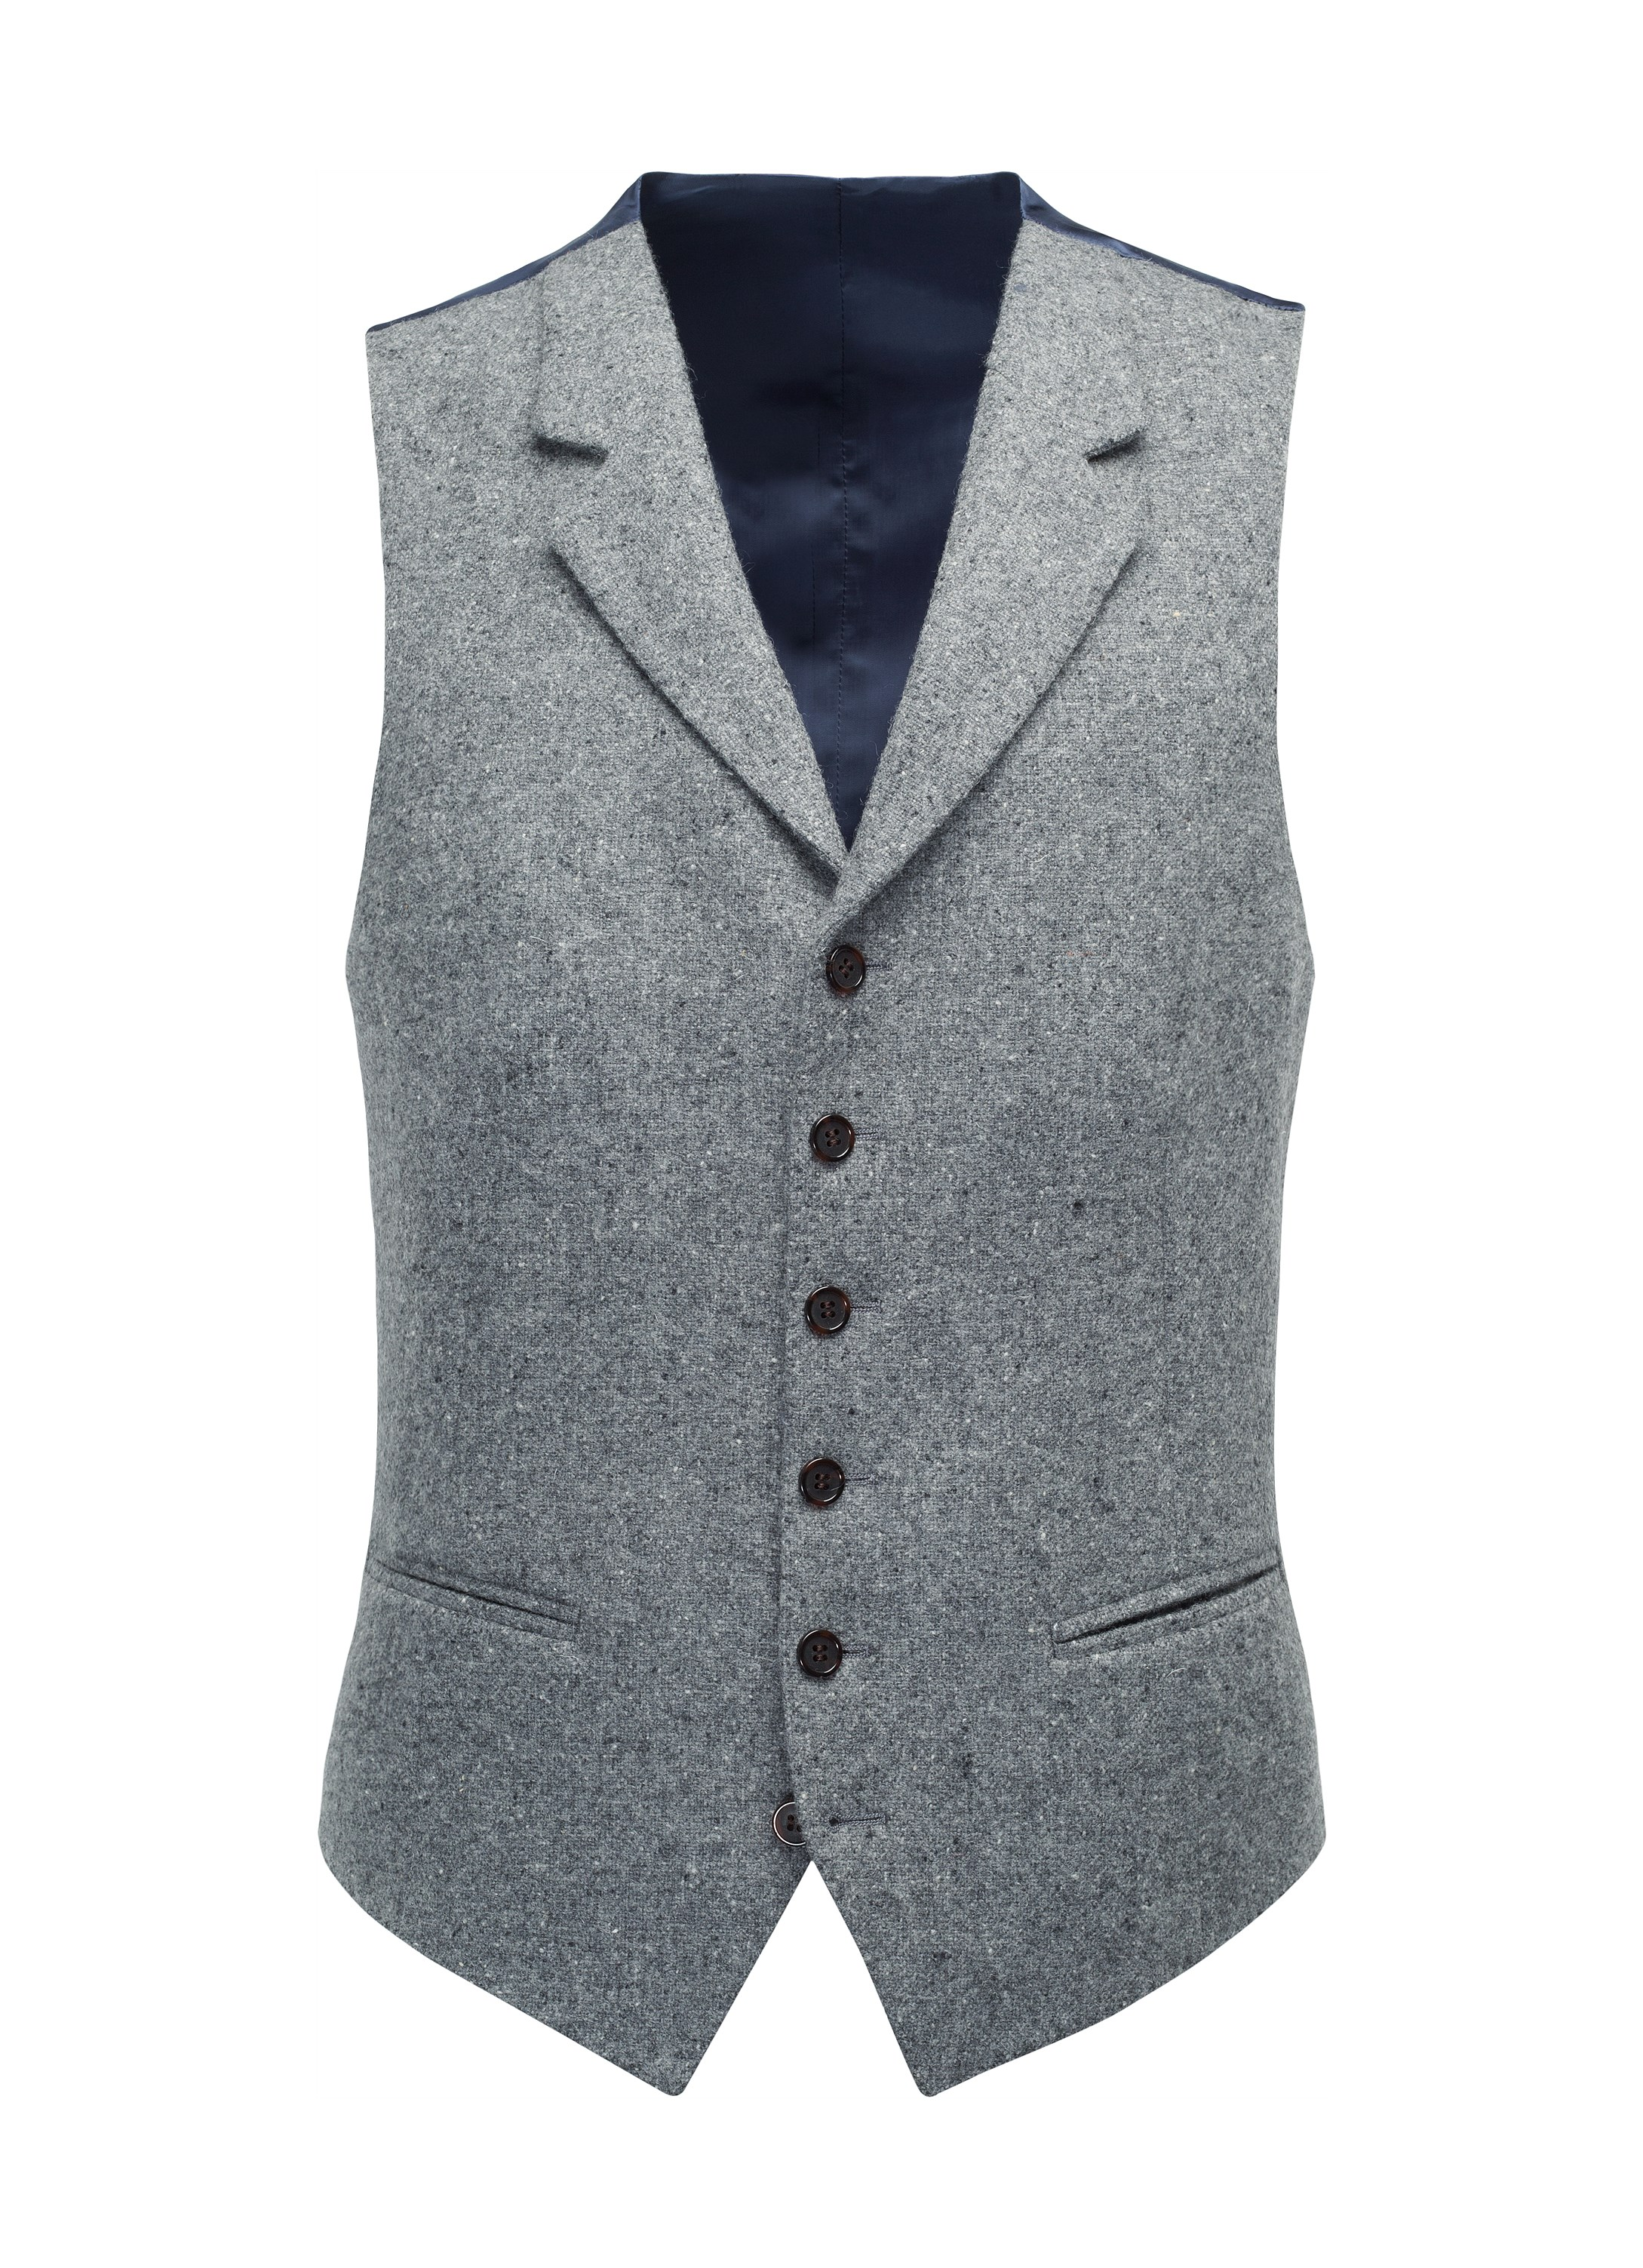 Find and save ideas about Waistcoat men on Pinterest. | See more ideas about Mens vest online, Waistcoat men casual and Waistcoat online.